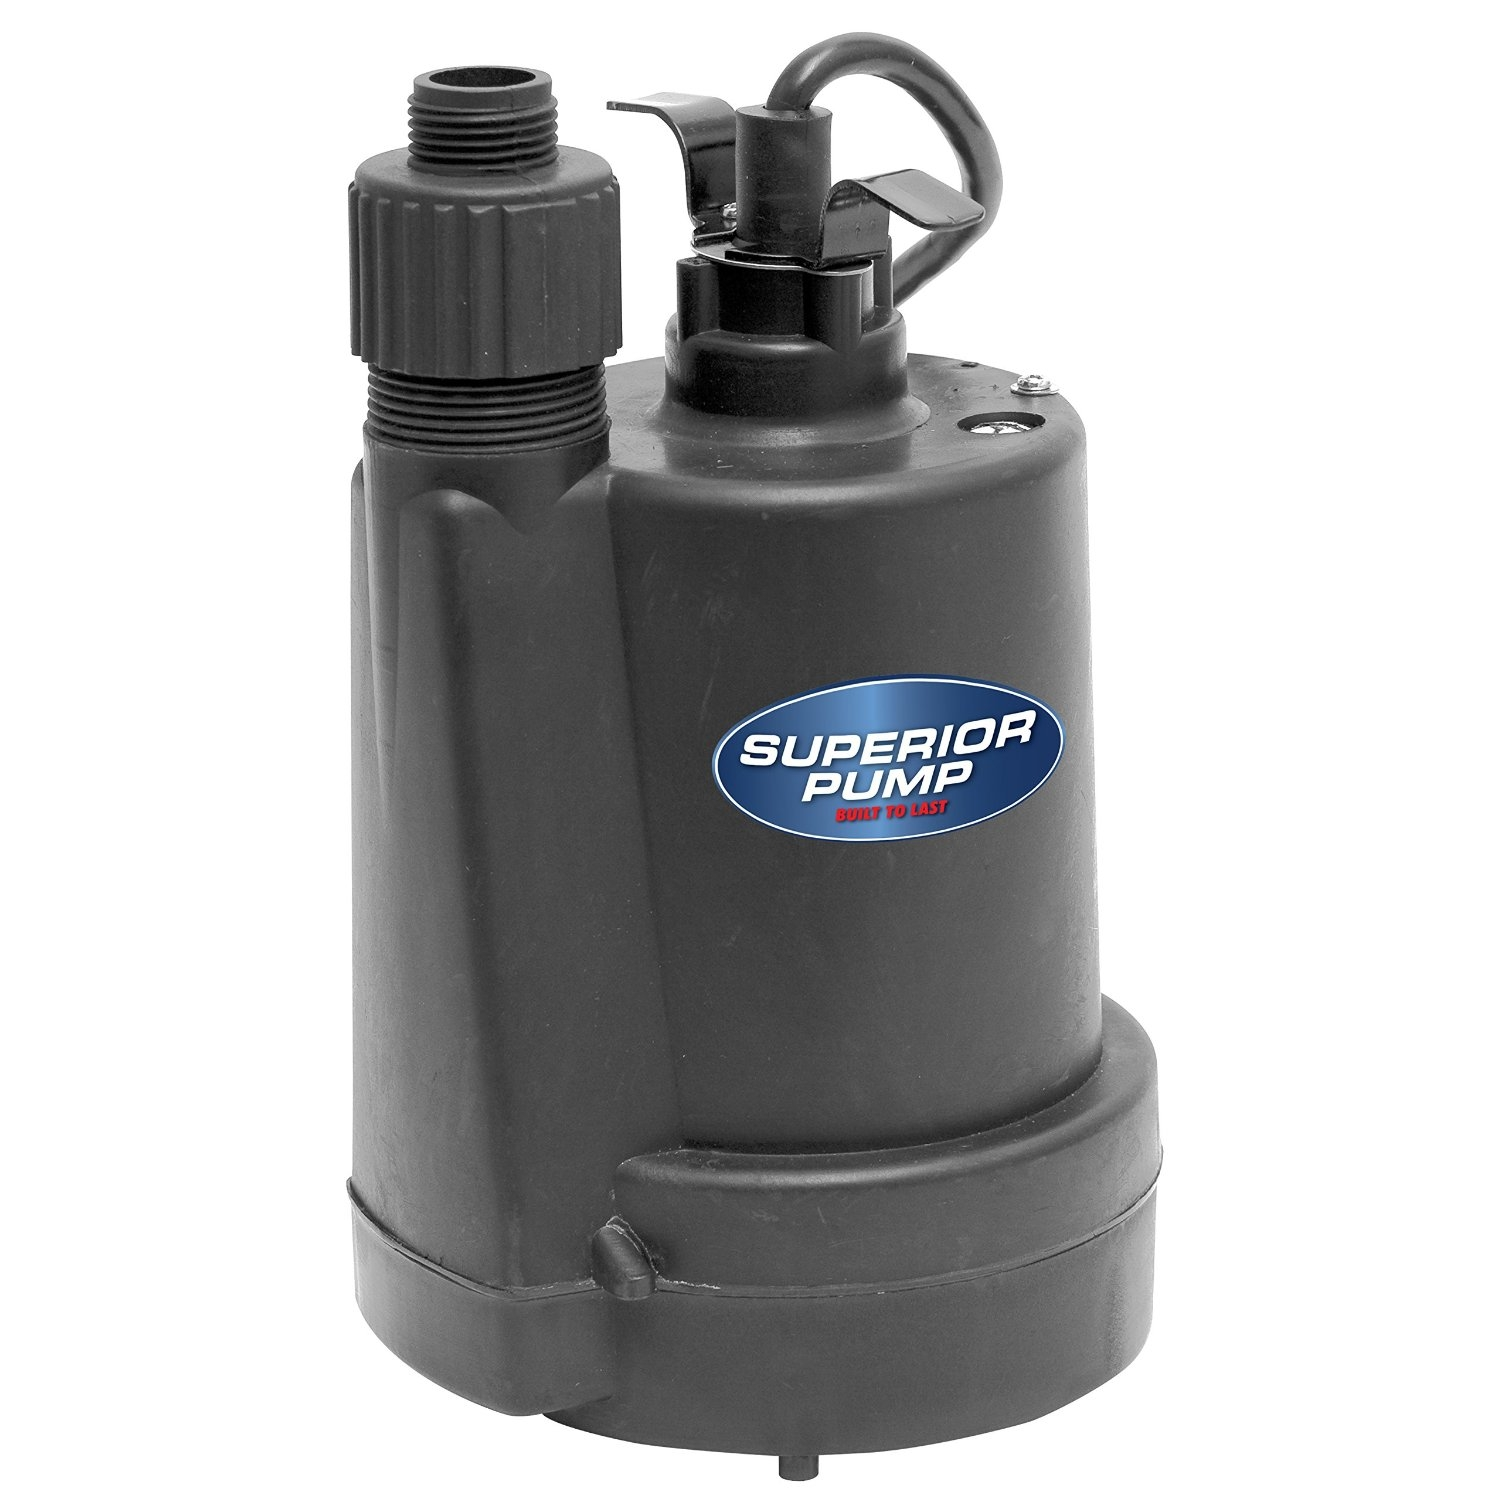 Small Sump Pumps For Basements Small Sump Pumps For Basements best sump pump reviewed compared tested in 2017 1500 X 1500